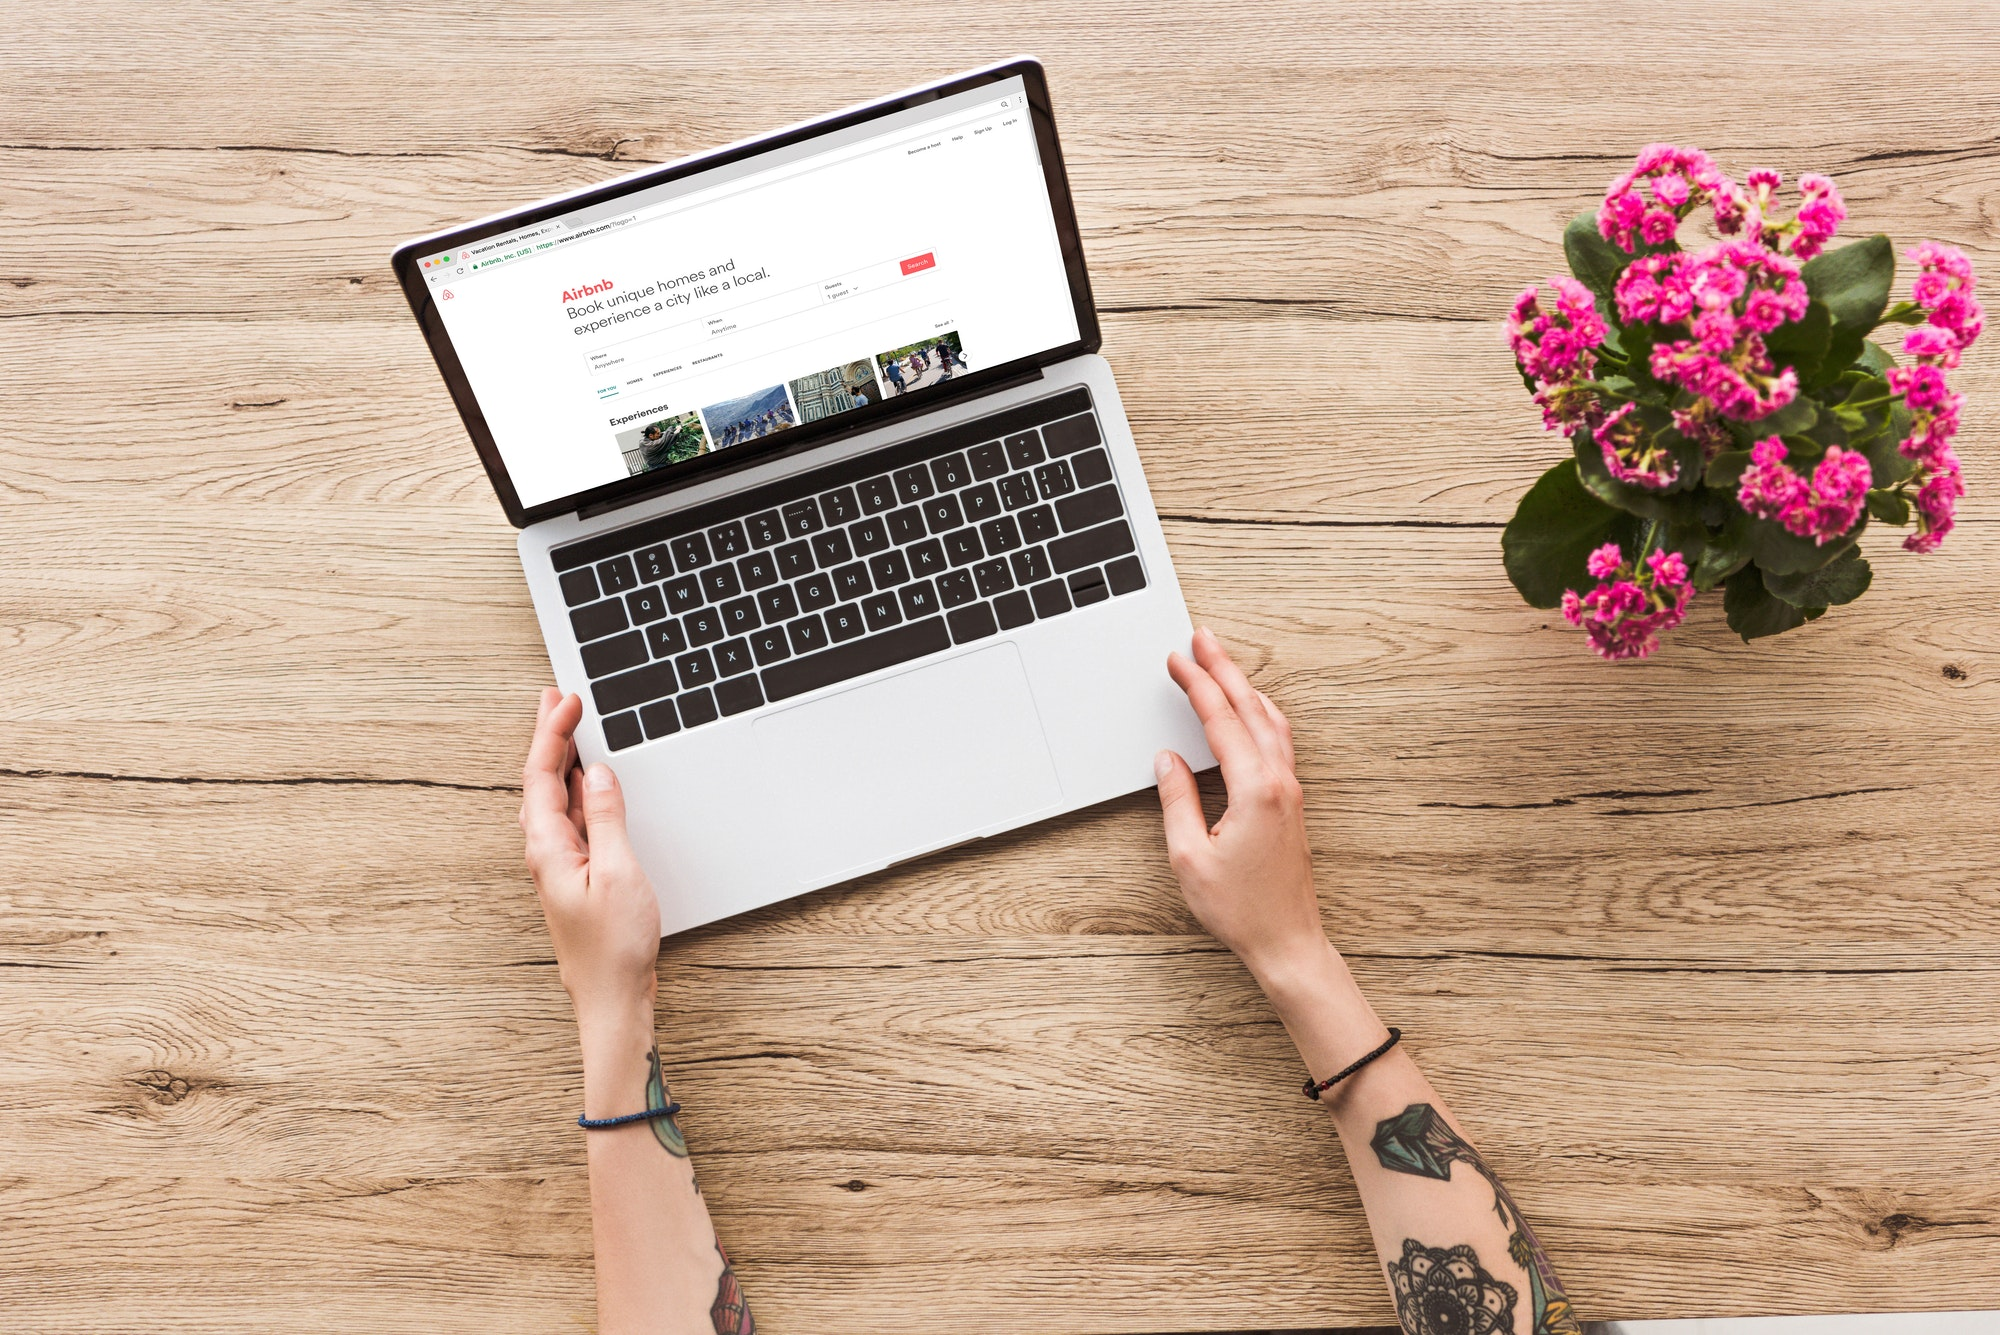 partial view of woman at tabletop with laptop with airbnb website and kalanhoe plant in flowerpot